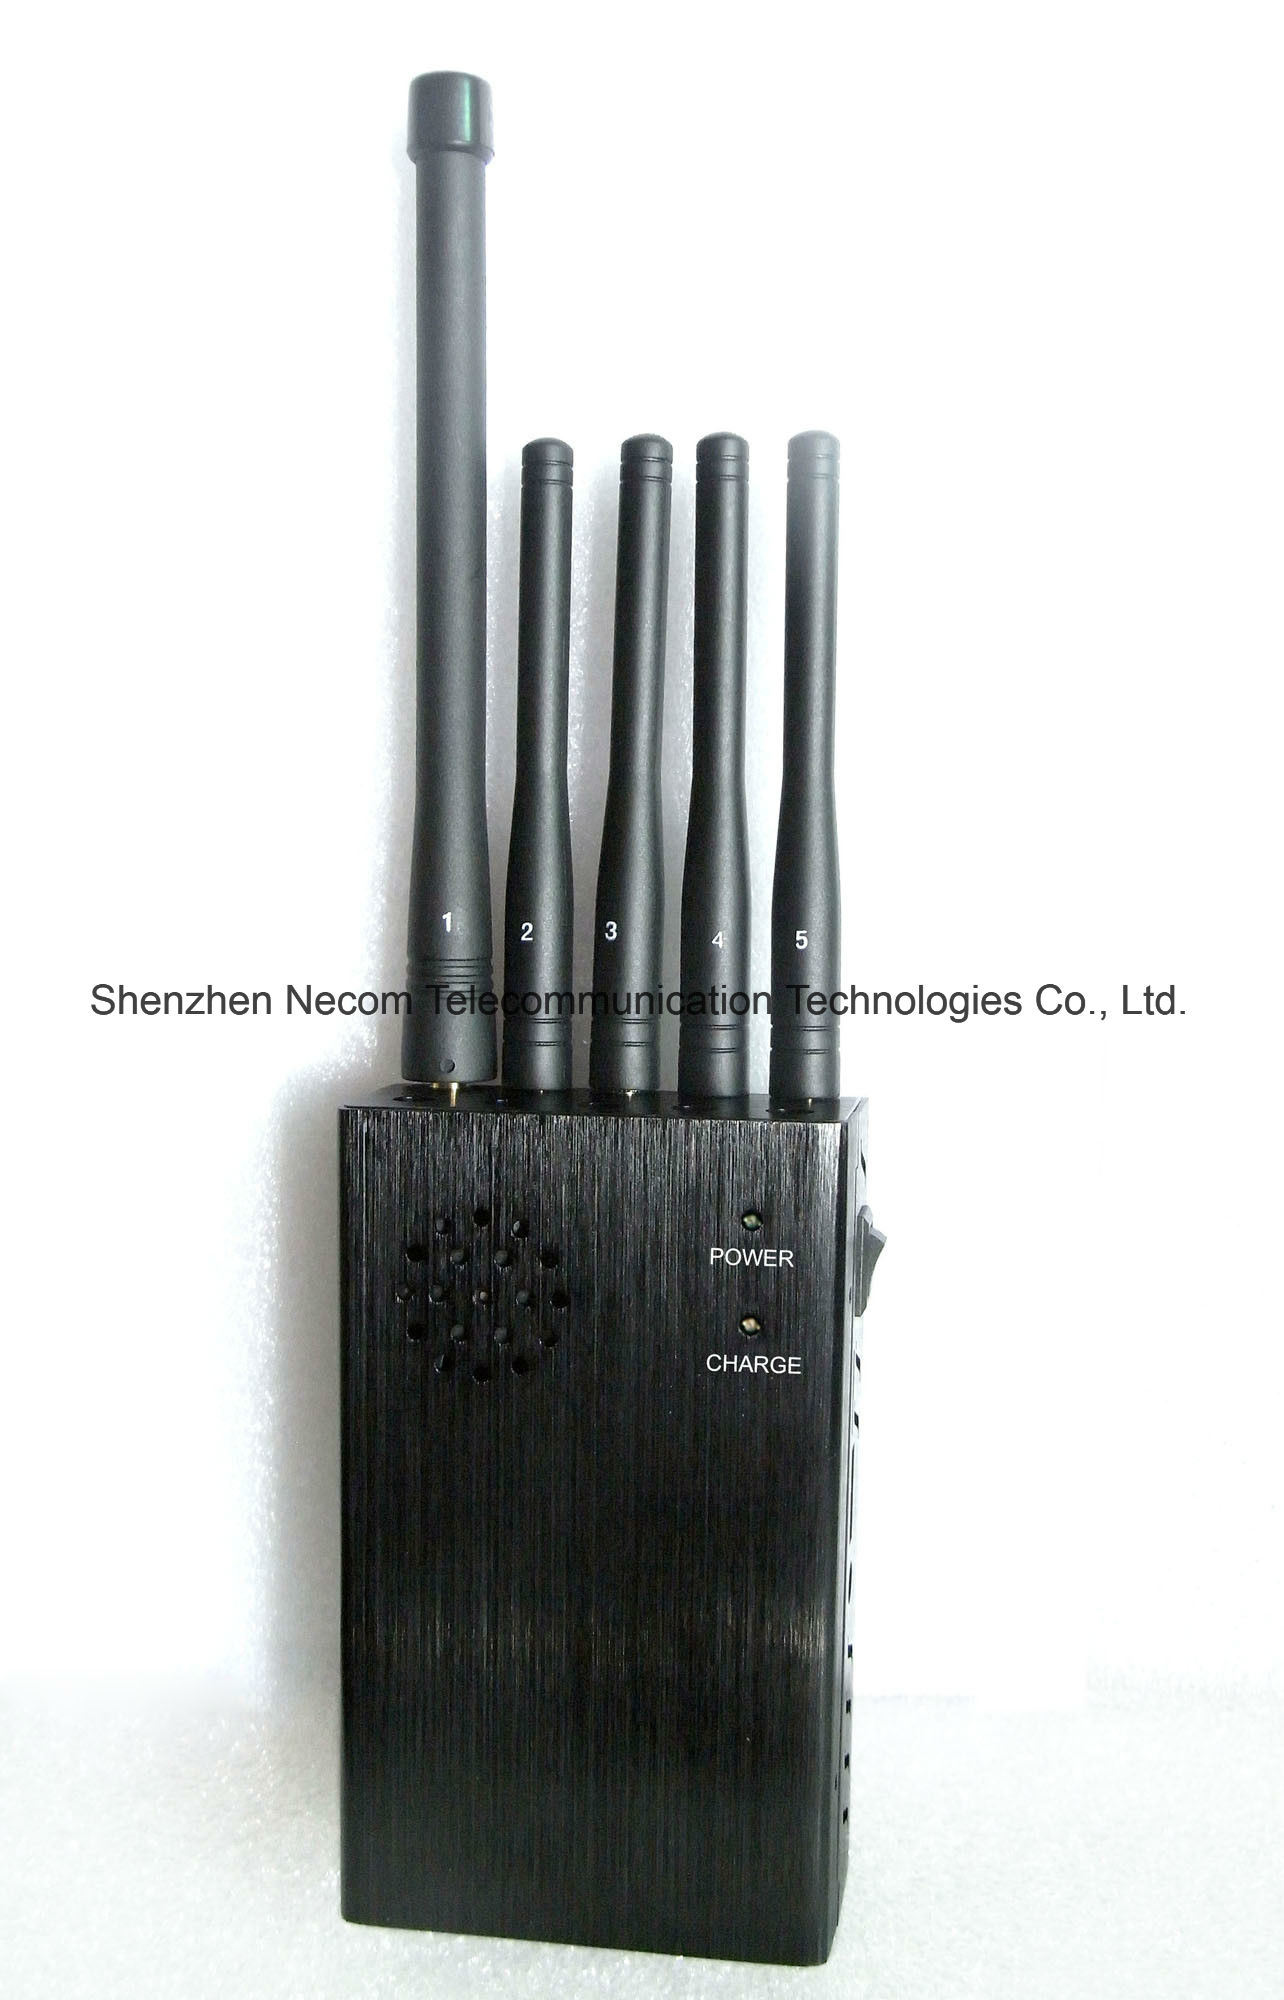 phone jammer dx meaning - China 5 Antennas Handheld WiFi GPS Cell Phone Jammer, 5-Band Portable WiFi Bluetooth Wireless Video Cell Phone Jammer - China Portable Cellphone Jammer, GSM Jammer